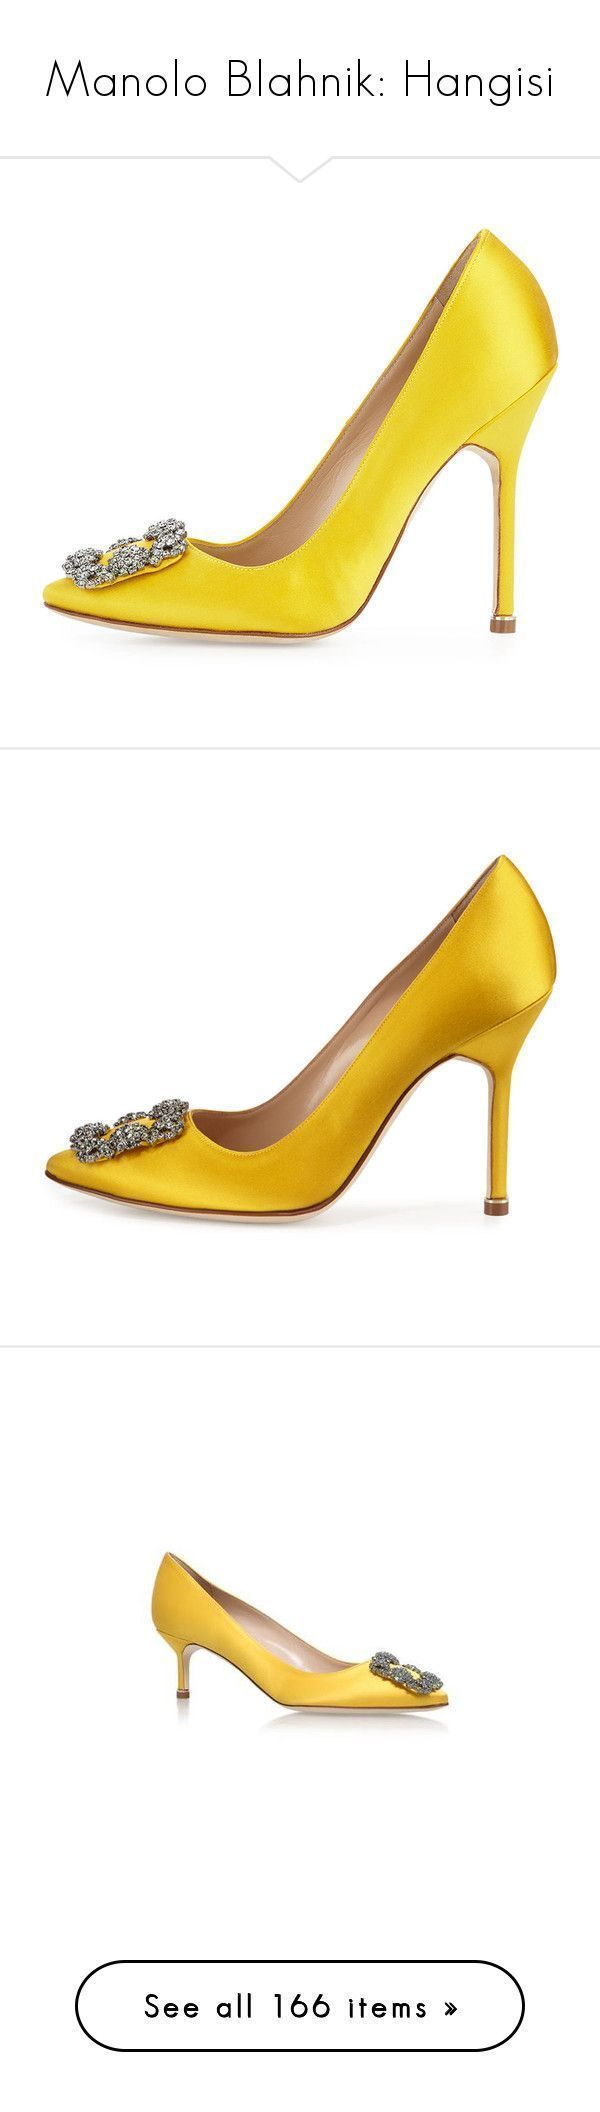 """""""Manolo Blahnik: Hangisi"""" by livnd ❤ liked on Polyvore featuring shoes, pumps, satin shoes, yellow satin shoes, manolo blahnik, yellow pumps, satin pumps, crystal shoes, yellow shoes and buckle pumps #manoloblahnikyellow #manoloblahnikhangisi"""